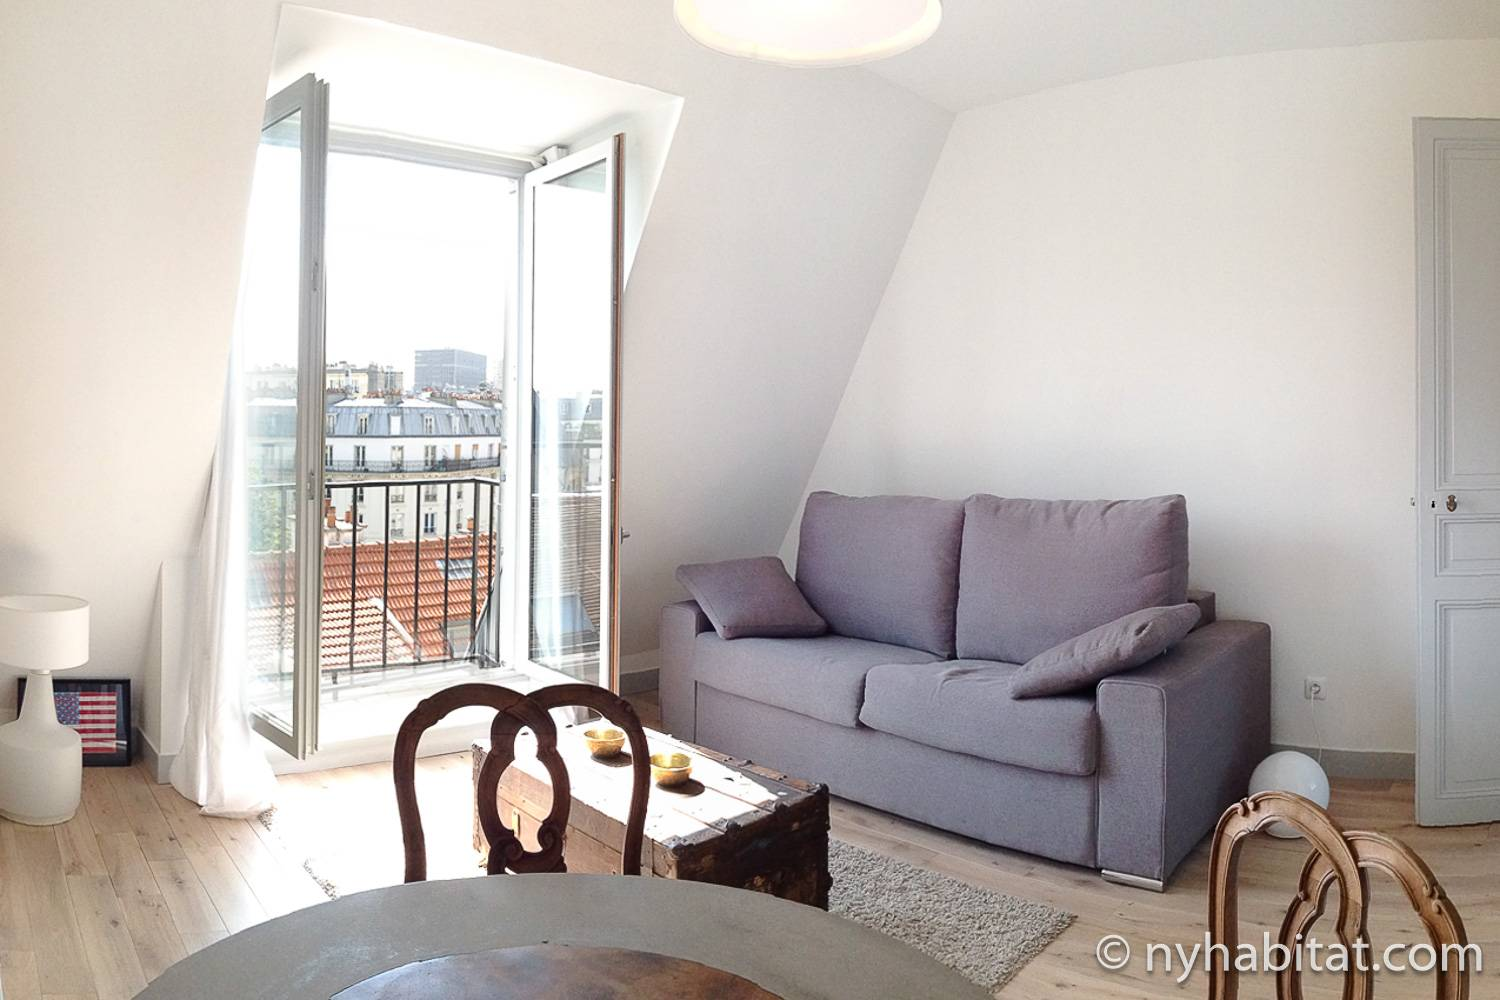 Image of living area of PA-4561 in the Latin Quarter of Paris with grey sofa and window.